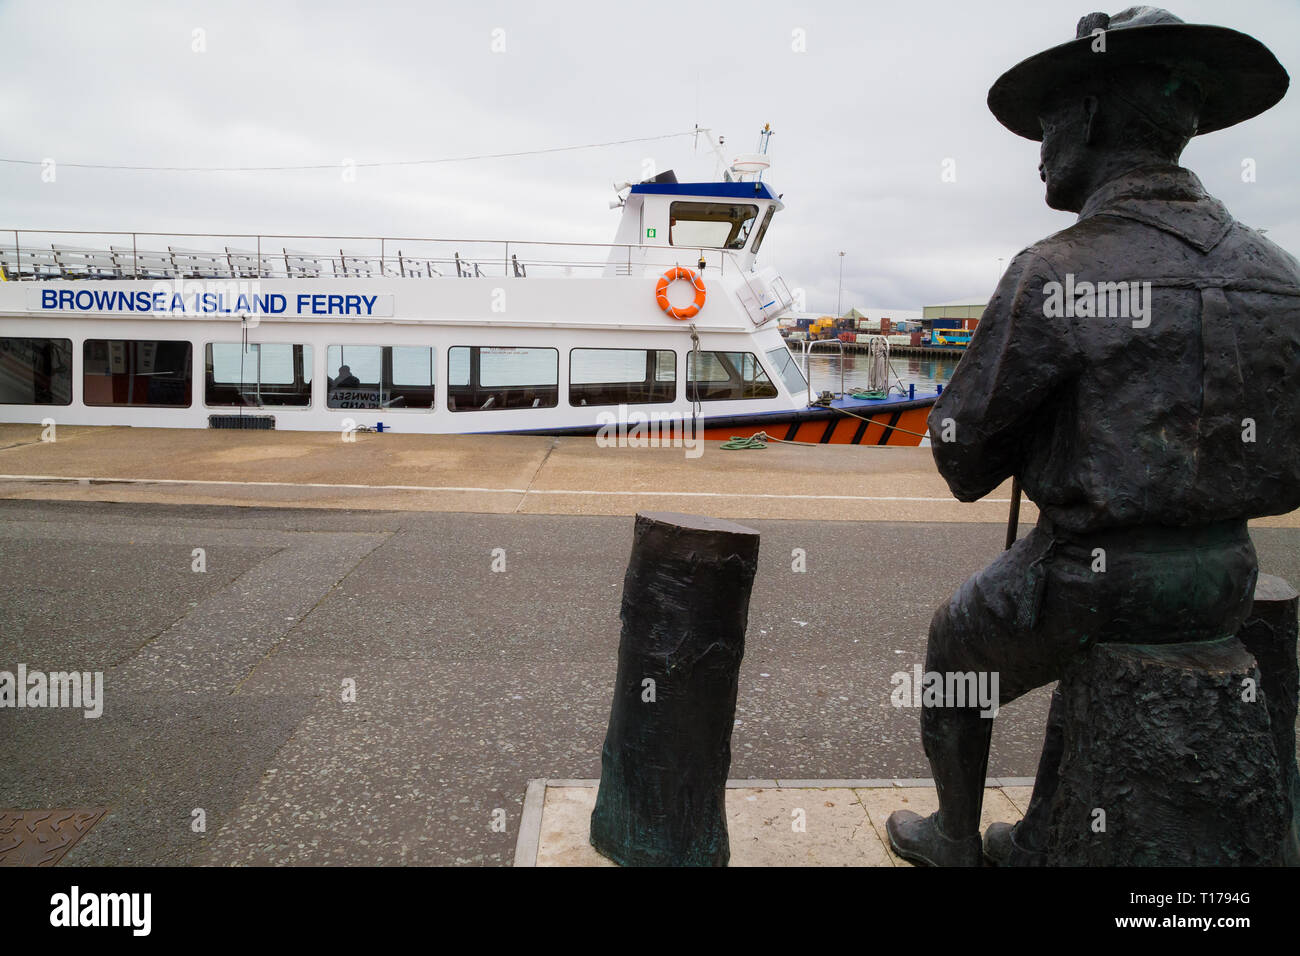 Robert Baden-Powell statue looks over to the Brownsea Island Ferry. Brownsea Island is where he first tested a youth scout camp. - Stock Image